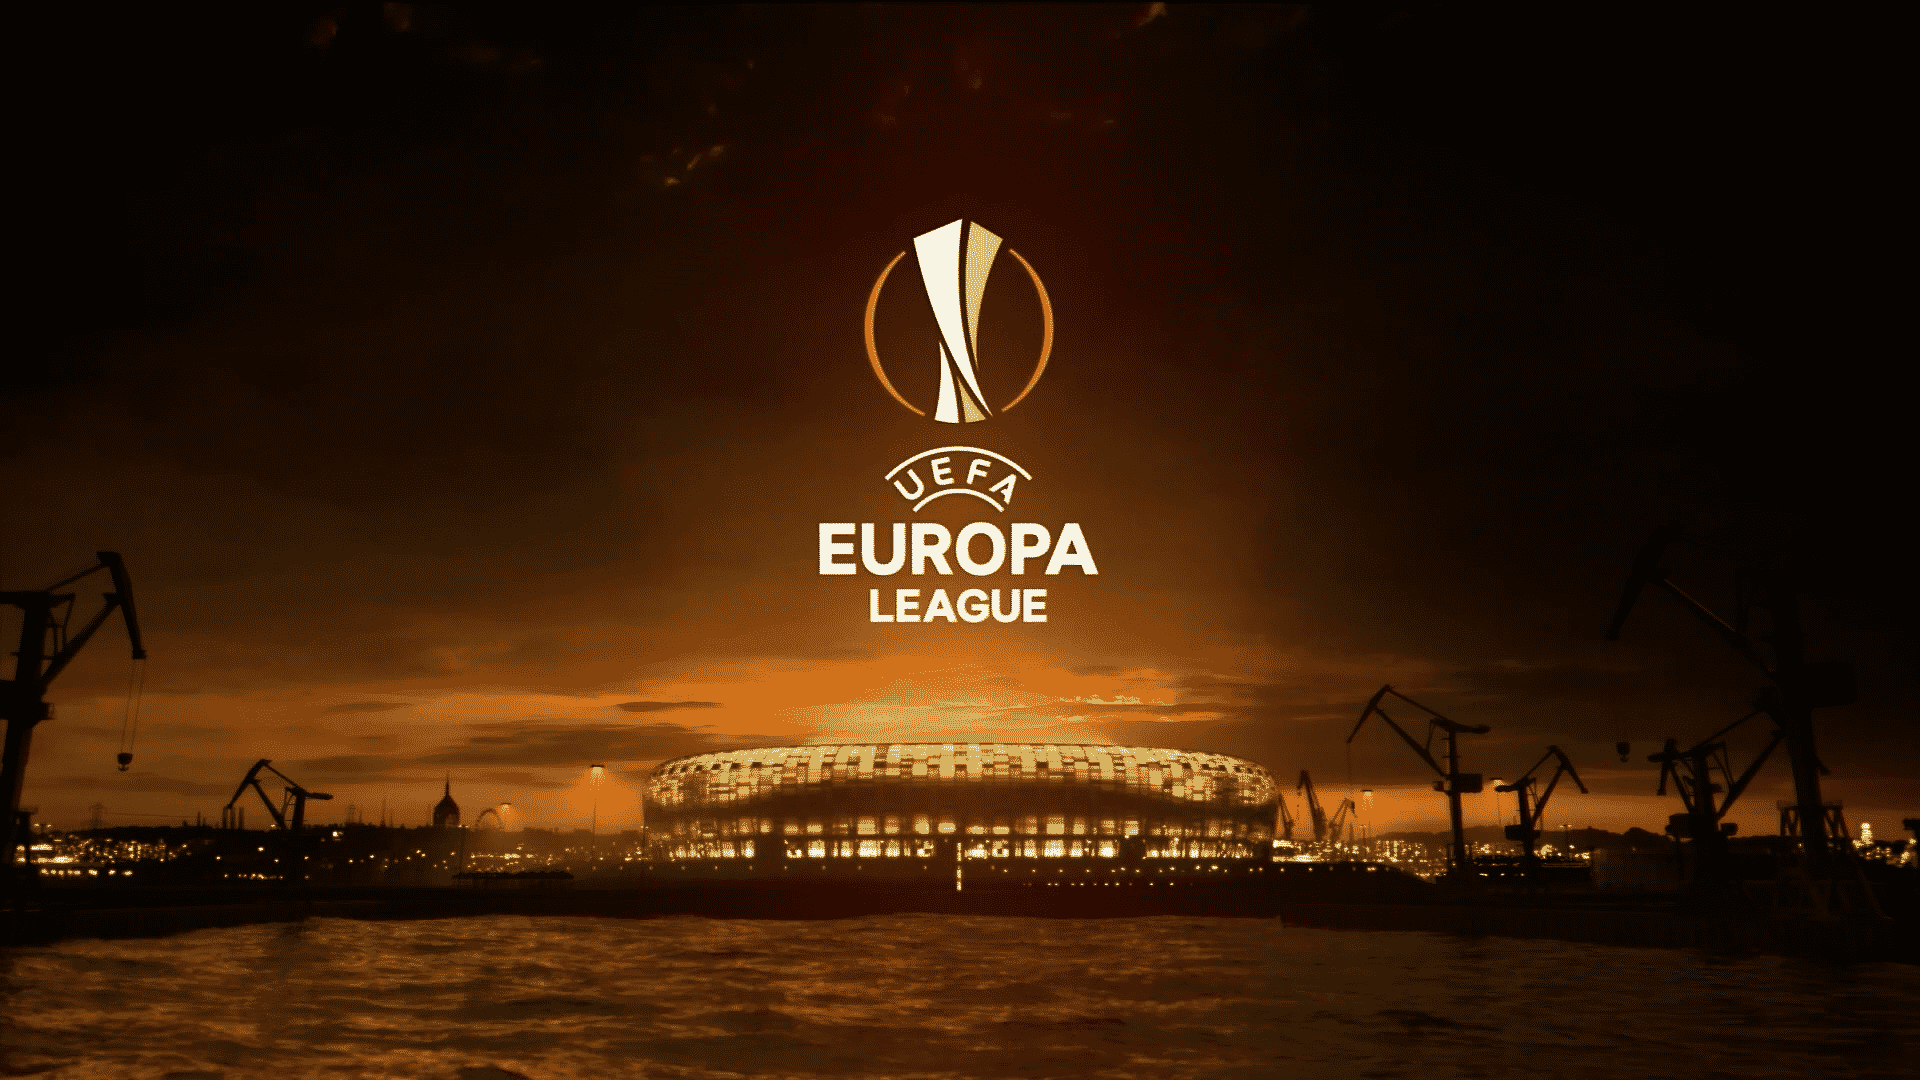 europa league betting tips 2020 2021 odds winner predictions europa league betting tips 2020 2021